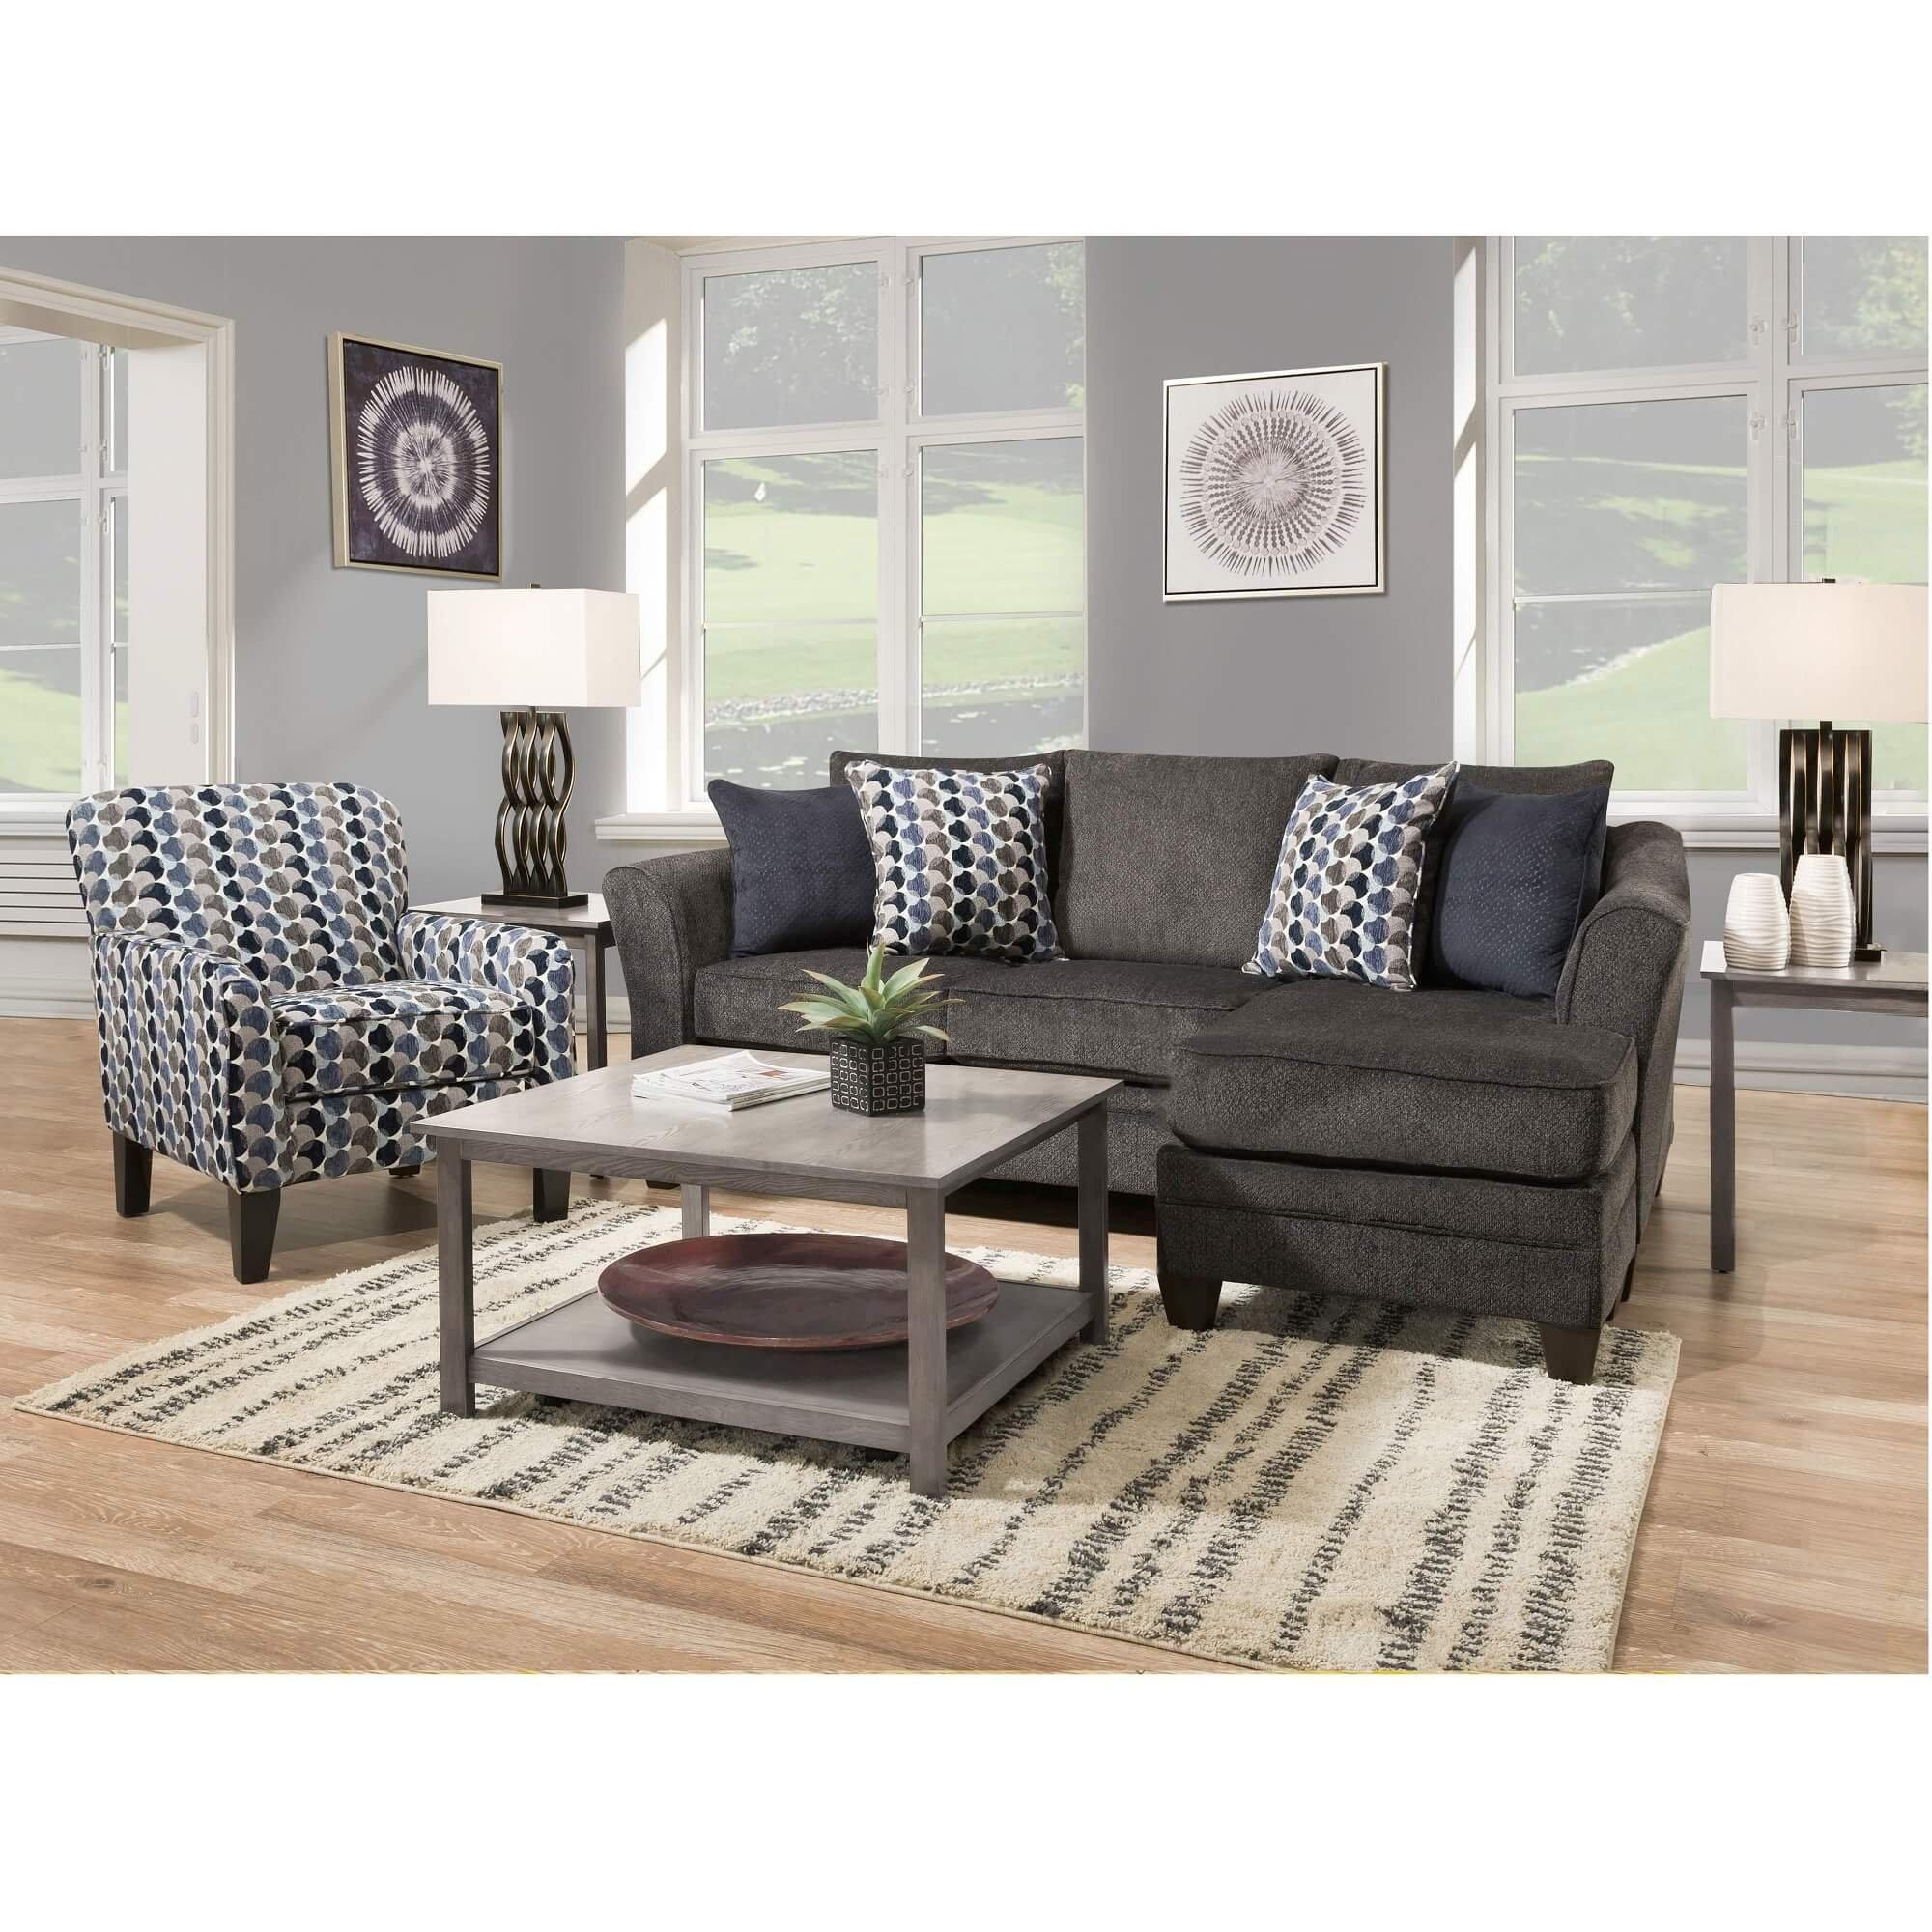 2 Piece Bubbles Living Room Collection, Aarons Living Room Sets